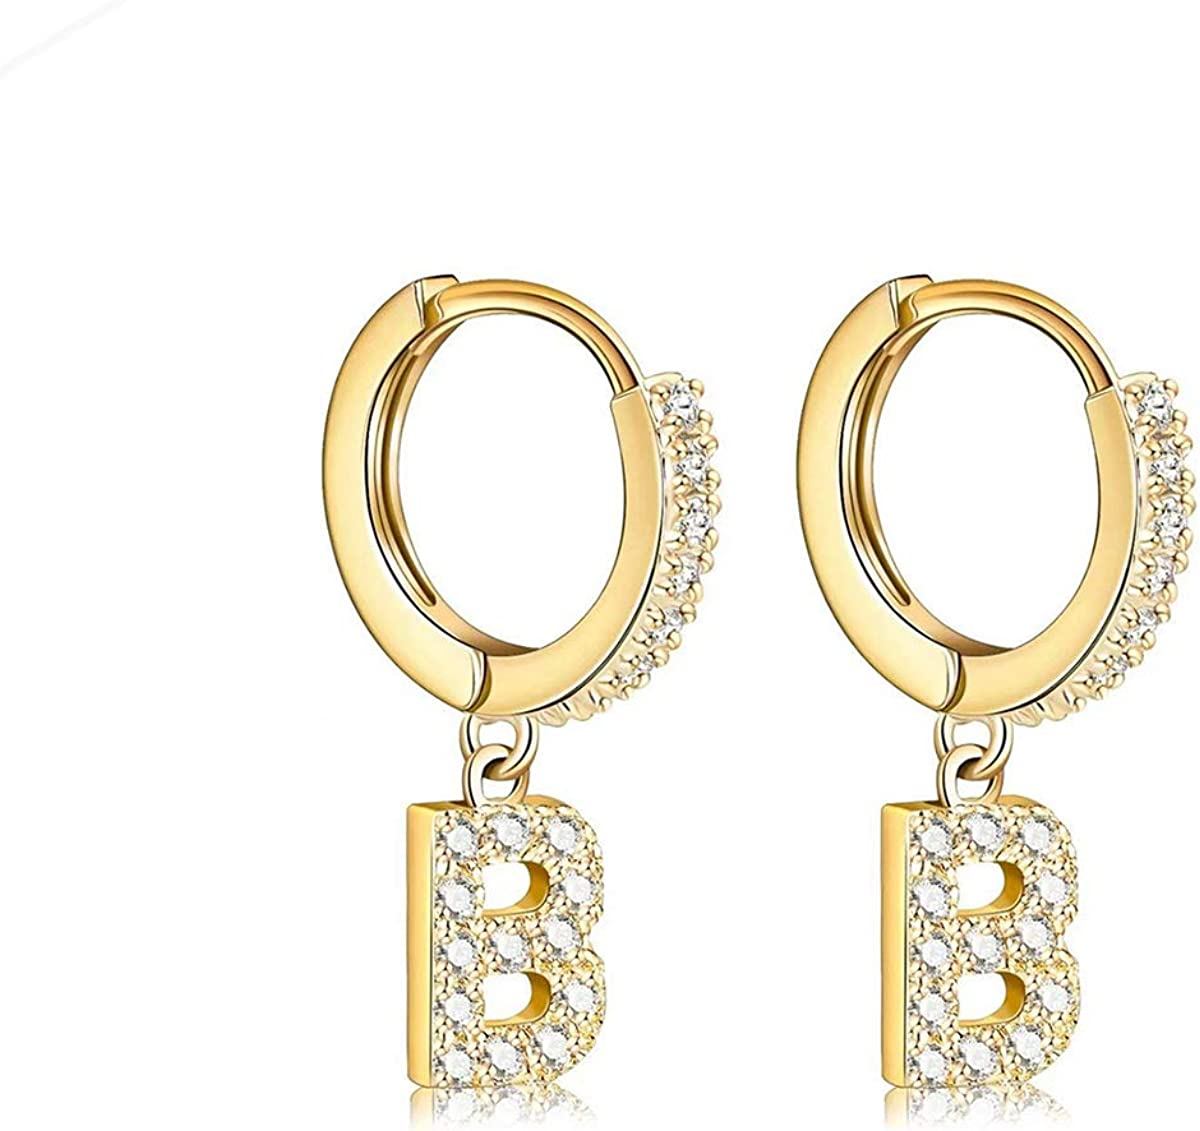 14K Washington Mall Gold Plated Cubic Zirconia Delicate Earrings OFFicial mail order Small H Initial